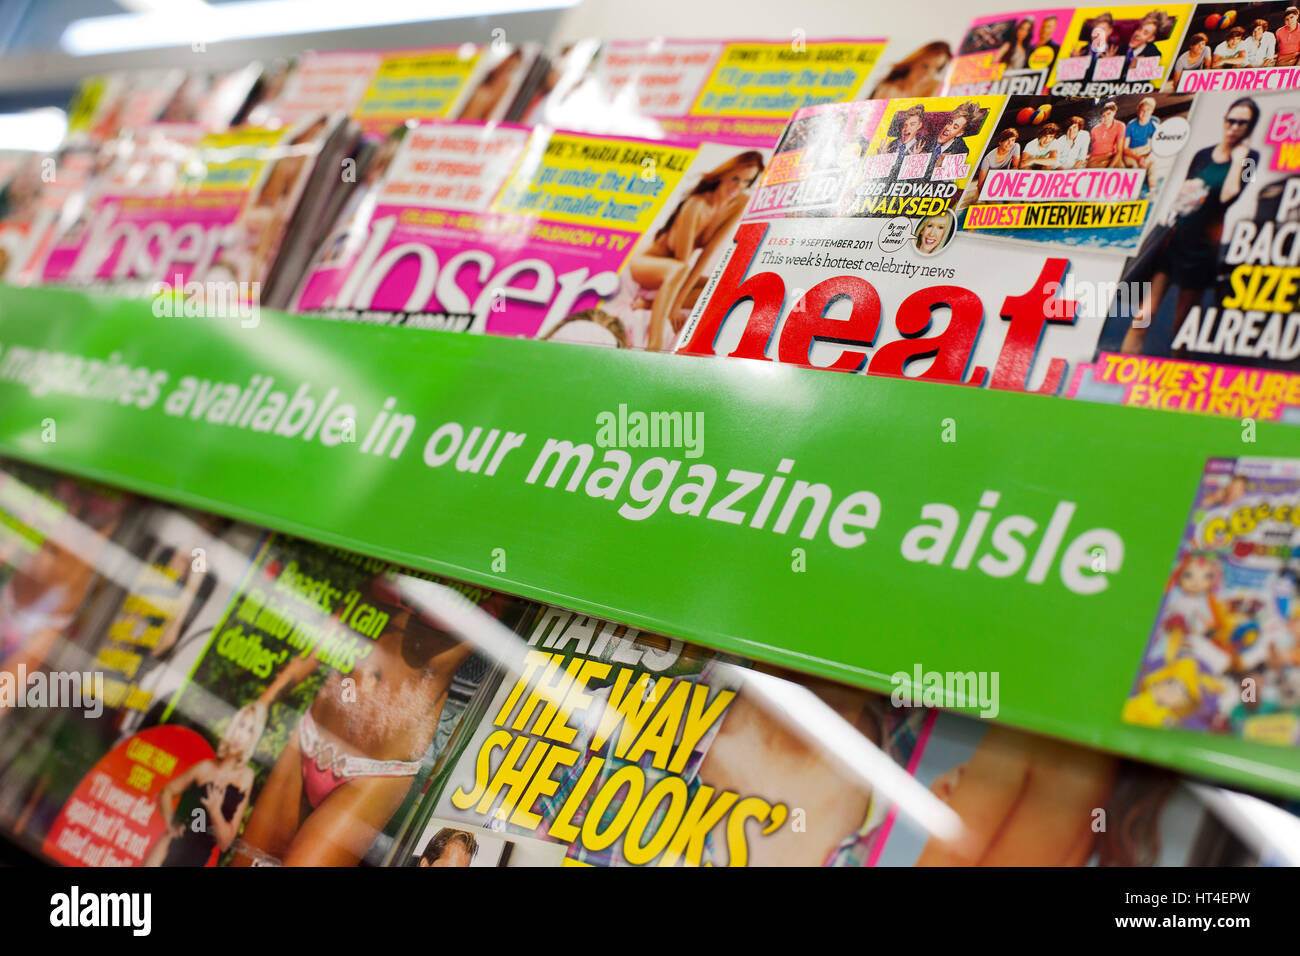 Heat and Closer magazines for sale in a supermarket - Stock Image